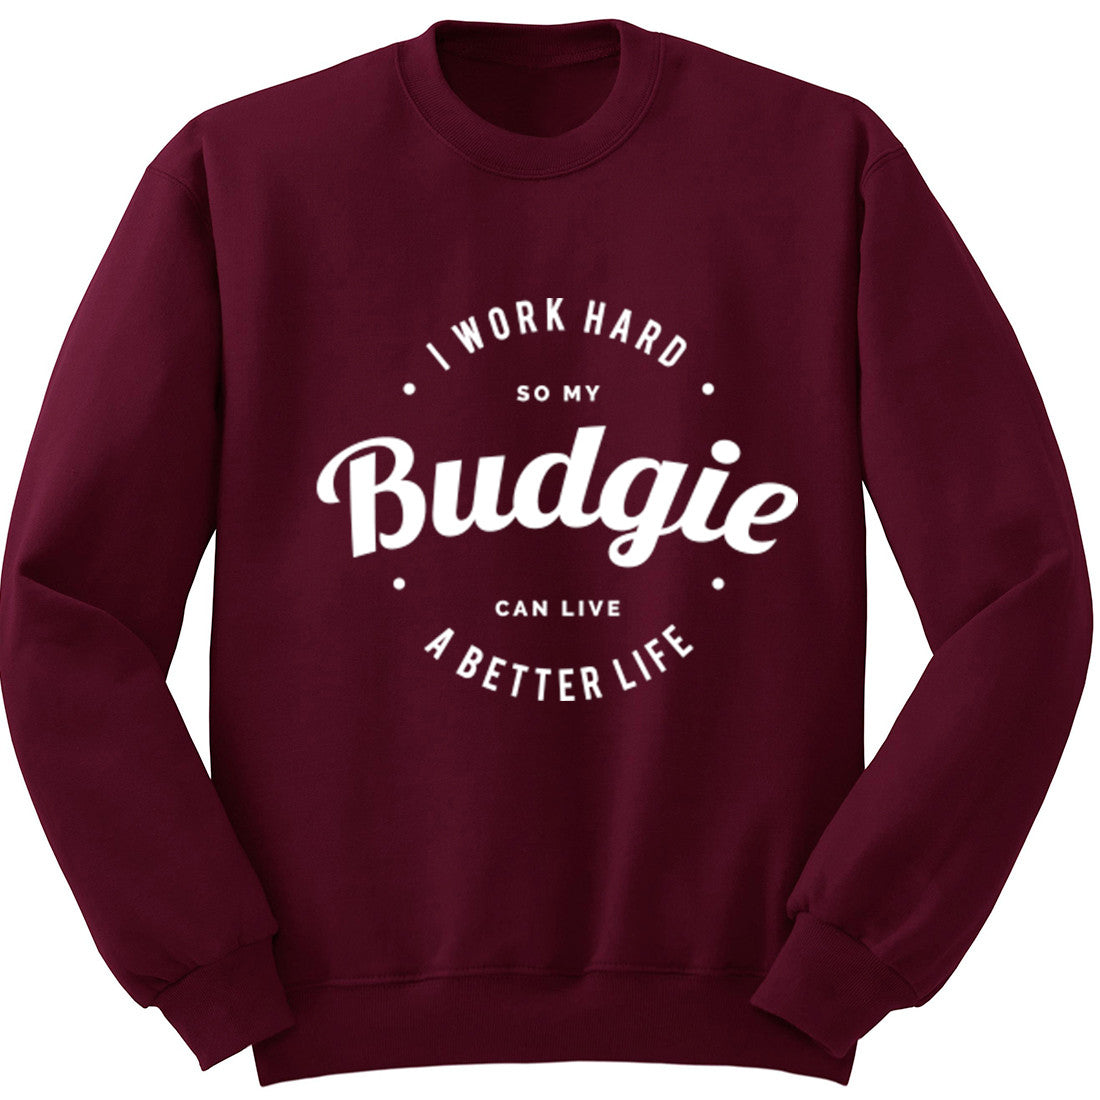 I Work Hard So My Budgie Can Live A Better Life Unisex Jumper K0439 - Illustrated Identity Ltd.